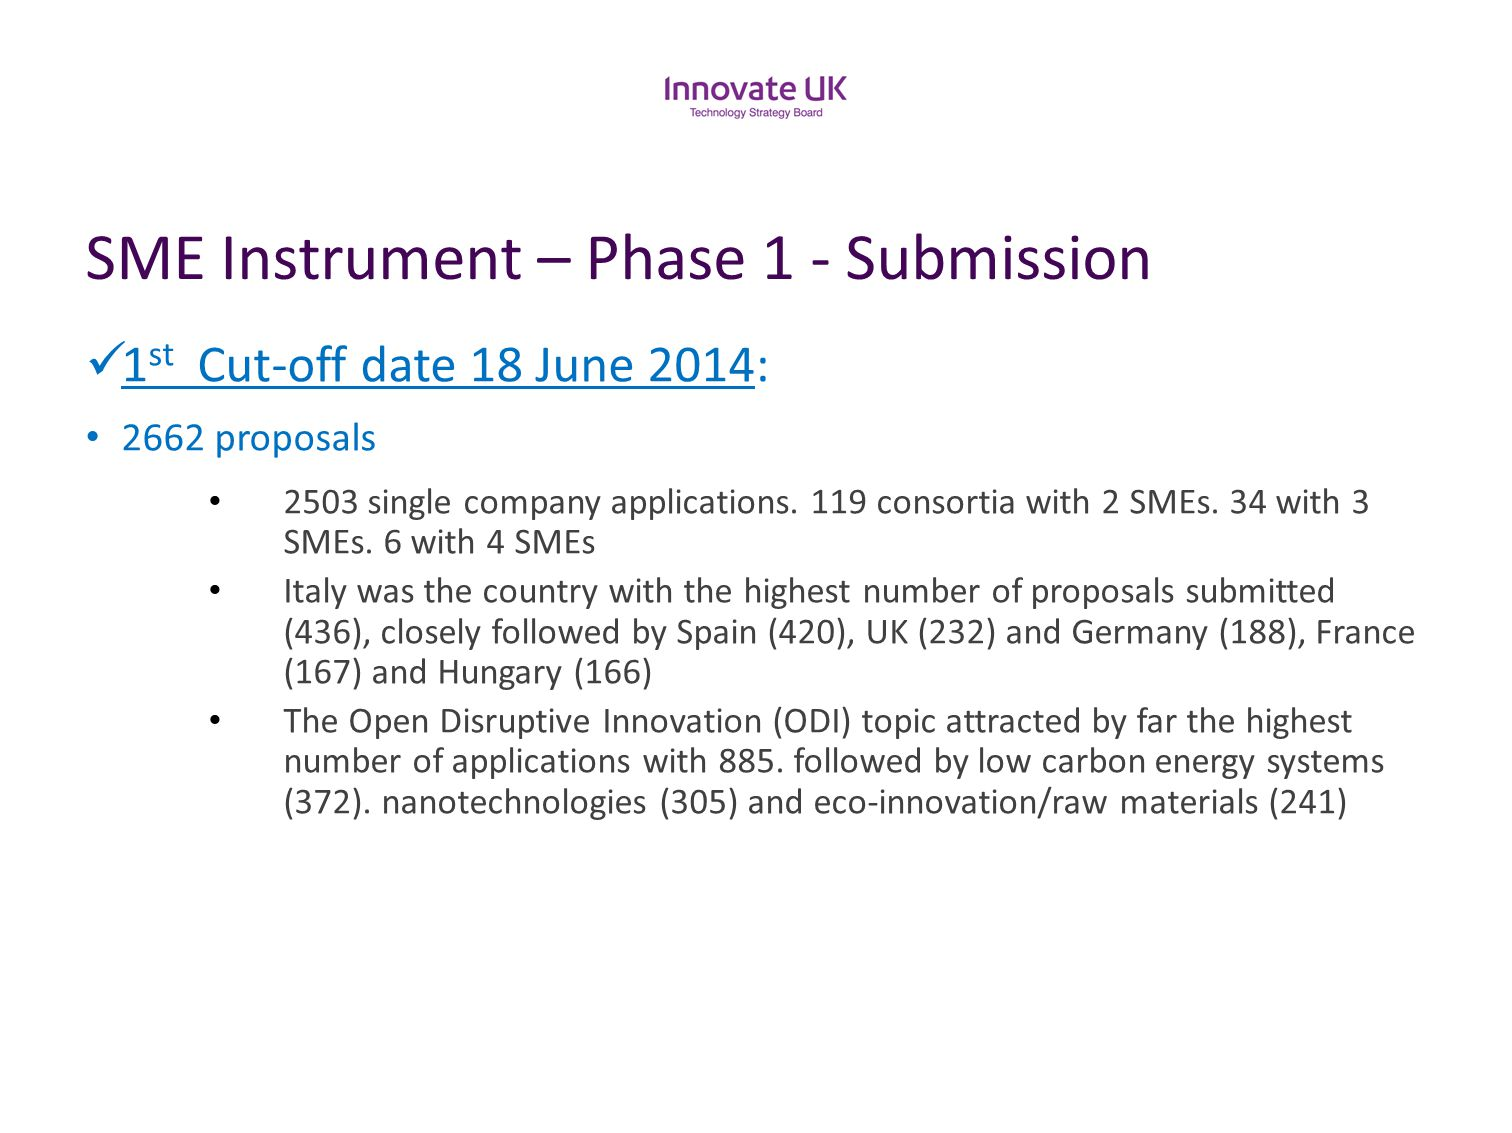 SME Instrument – Phase 1 - Submission 1 st Cut-off date 18 June 2014: 2662 proposals 2503 single company applications. 119 consortia with 2 SMEs. 34 w